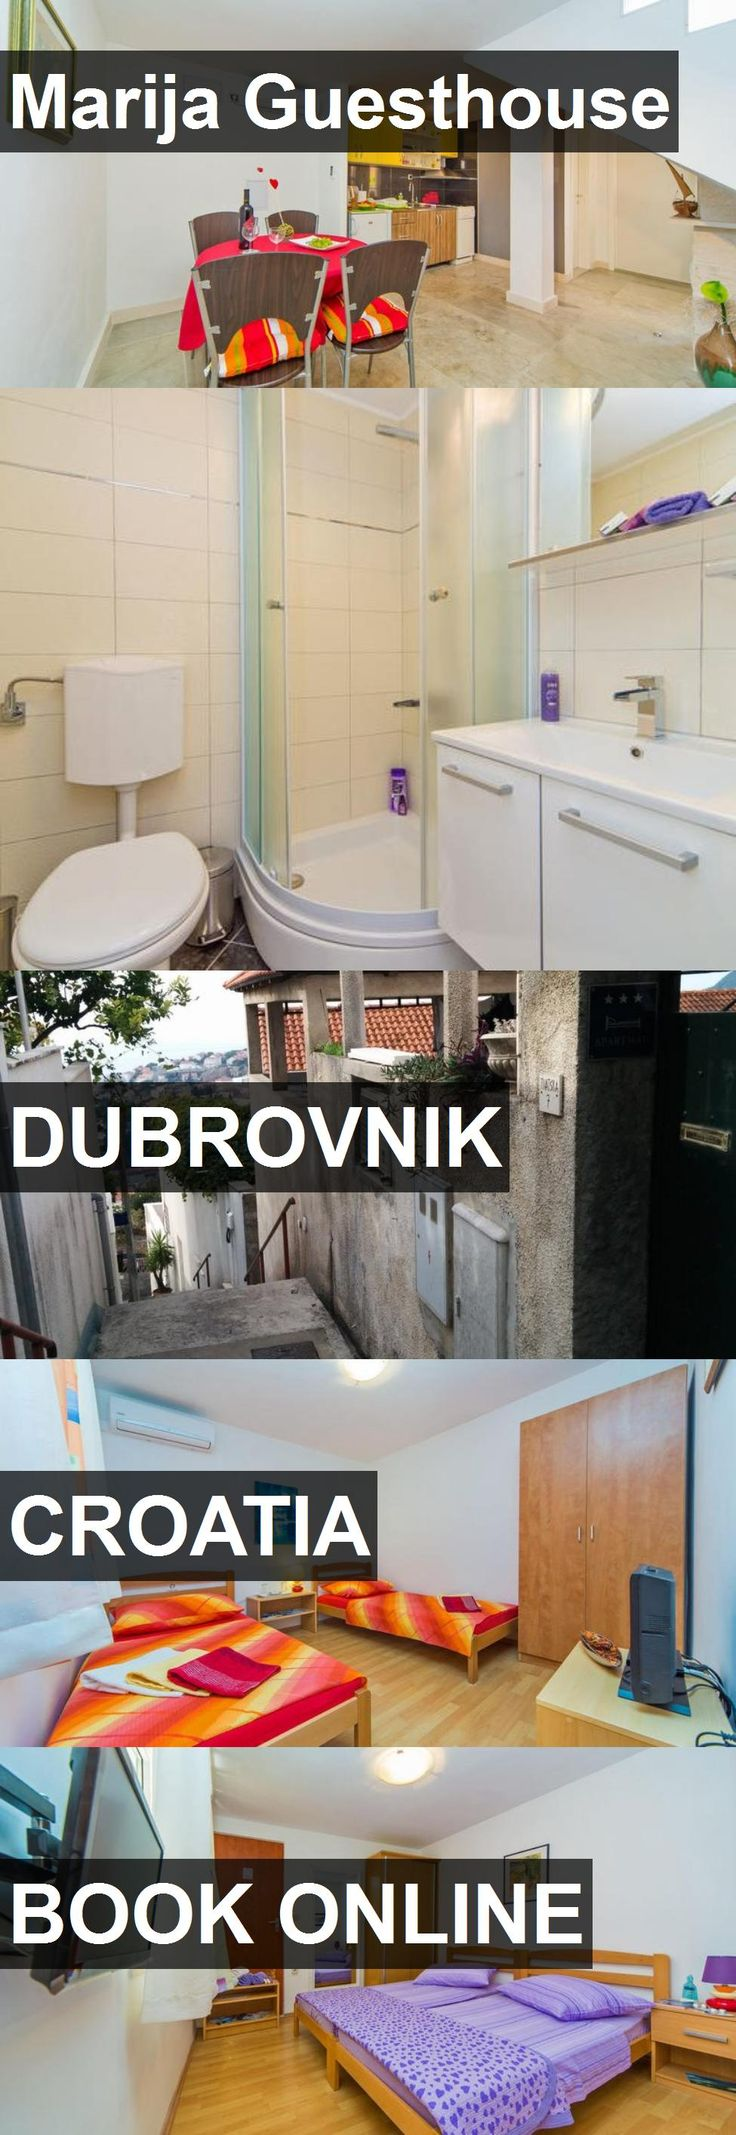 Hotel Marija Guesthouse in Dubrovnik, Croatia. For more information, photos, reviews and best prices please follow the link. #Croatia #Dubrovnik #MarijaGuesthouse #hotel #travel #vacation